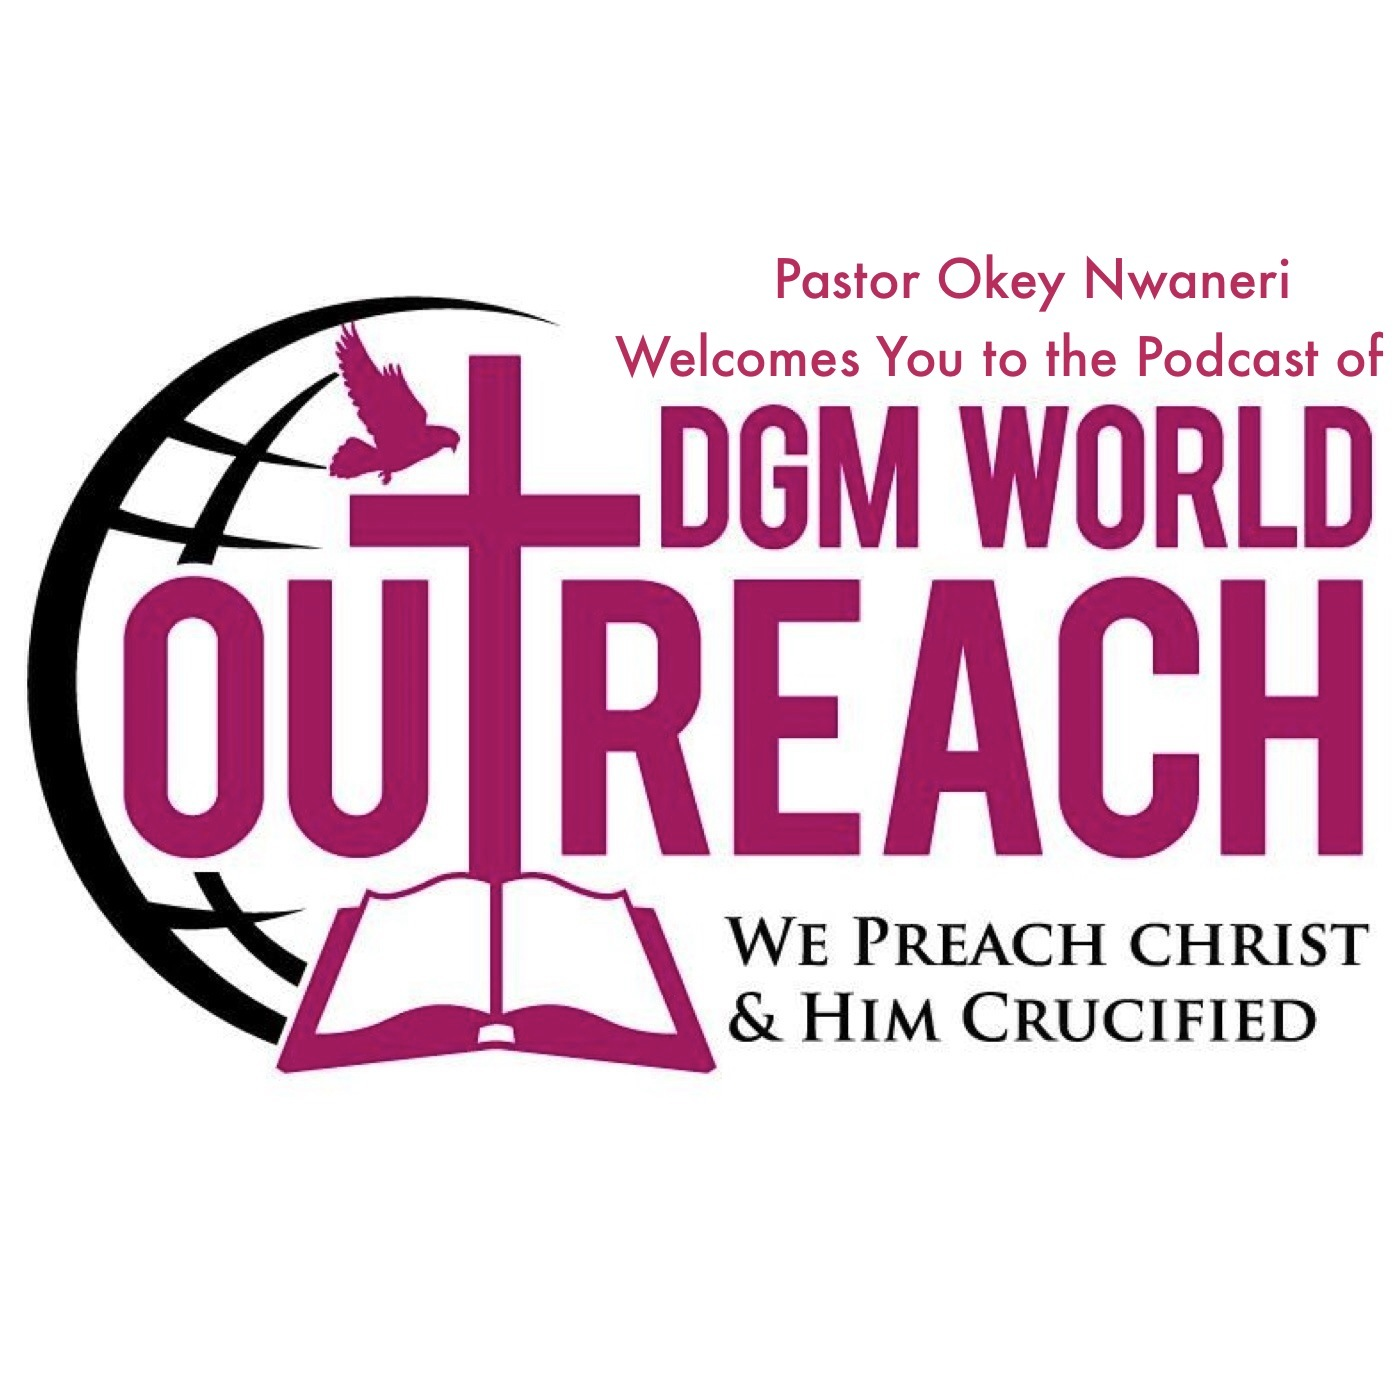 Divine Grace Mission World Outreach